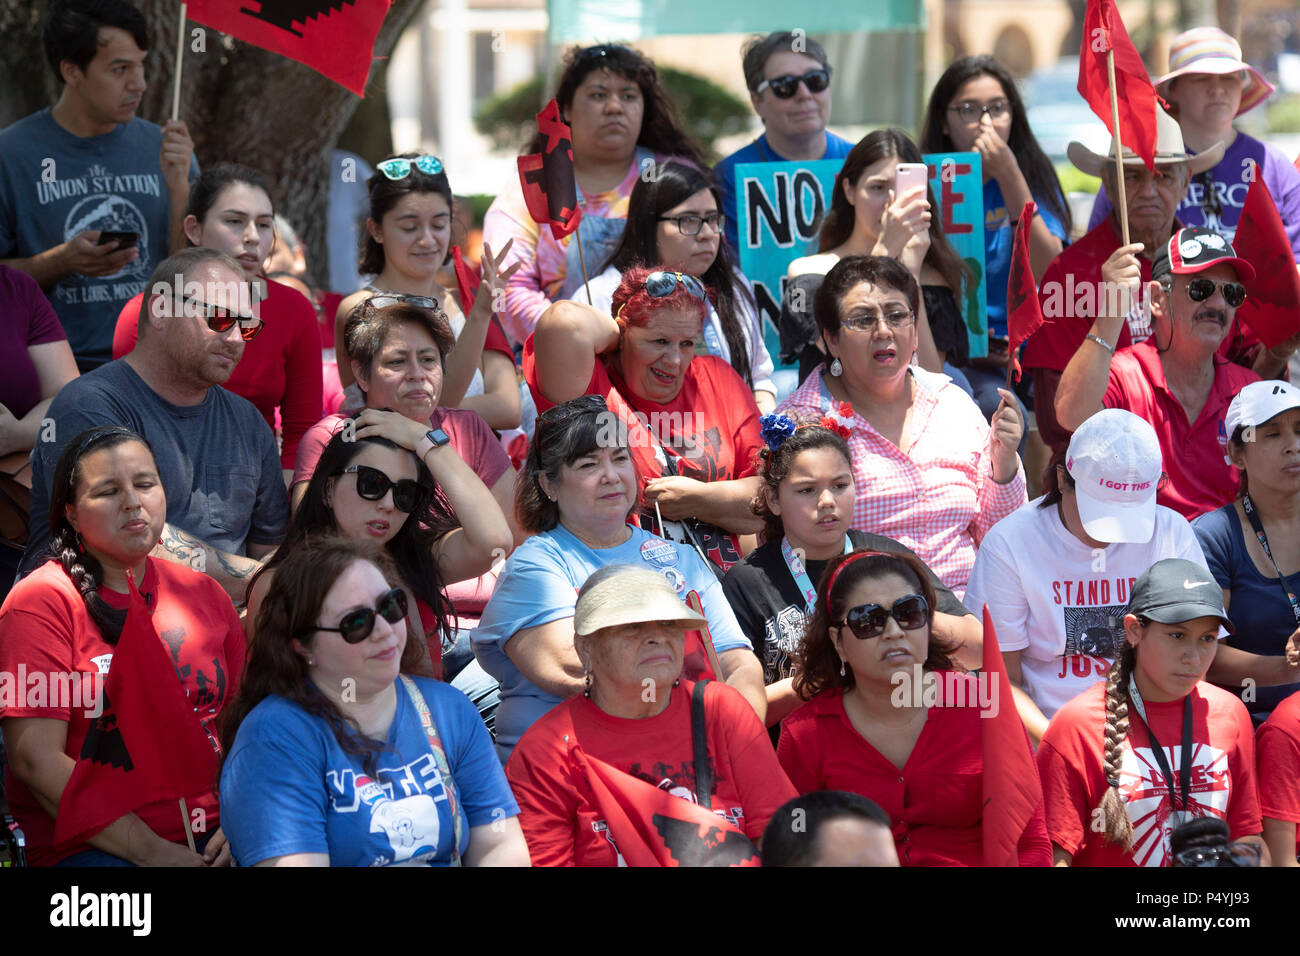 Protesters listen to Kerry Kennedy, director of the Robert F. Kennedy Center for Justice and daughter of Robert and Ethel Kennedy,as she kicks off a 24-day hunger strike during a rally in McAllen TX protesting Pres. Donald Trump's policy of separating immigrant families at the US-Mexico border.. - Stock Image